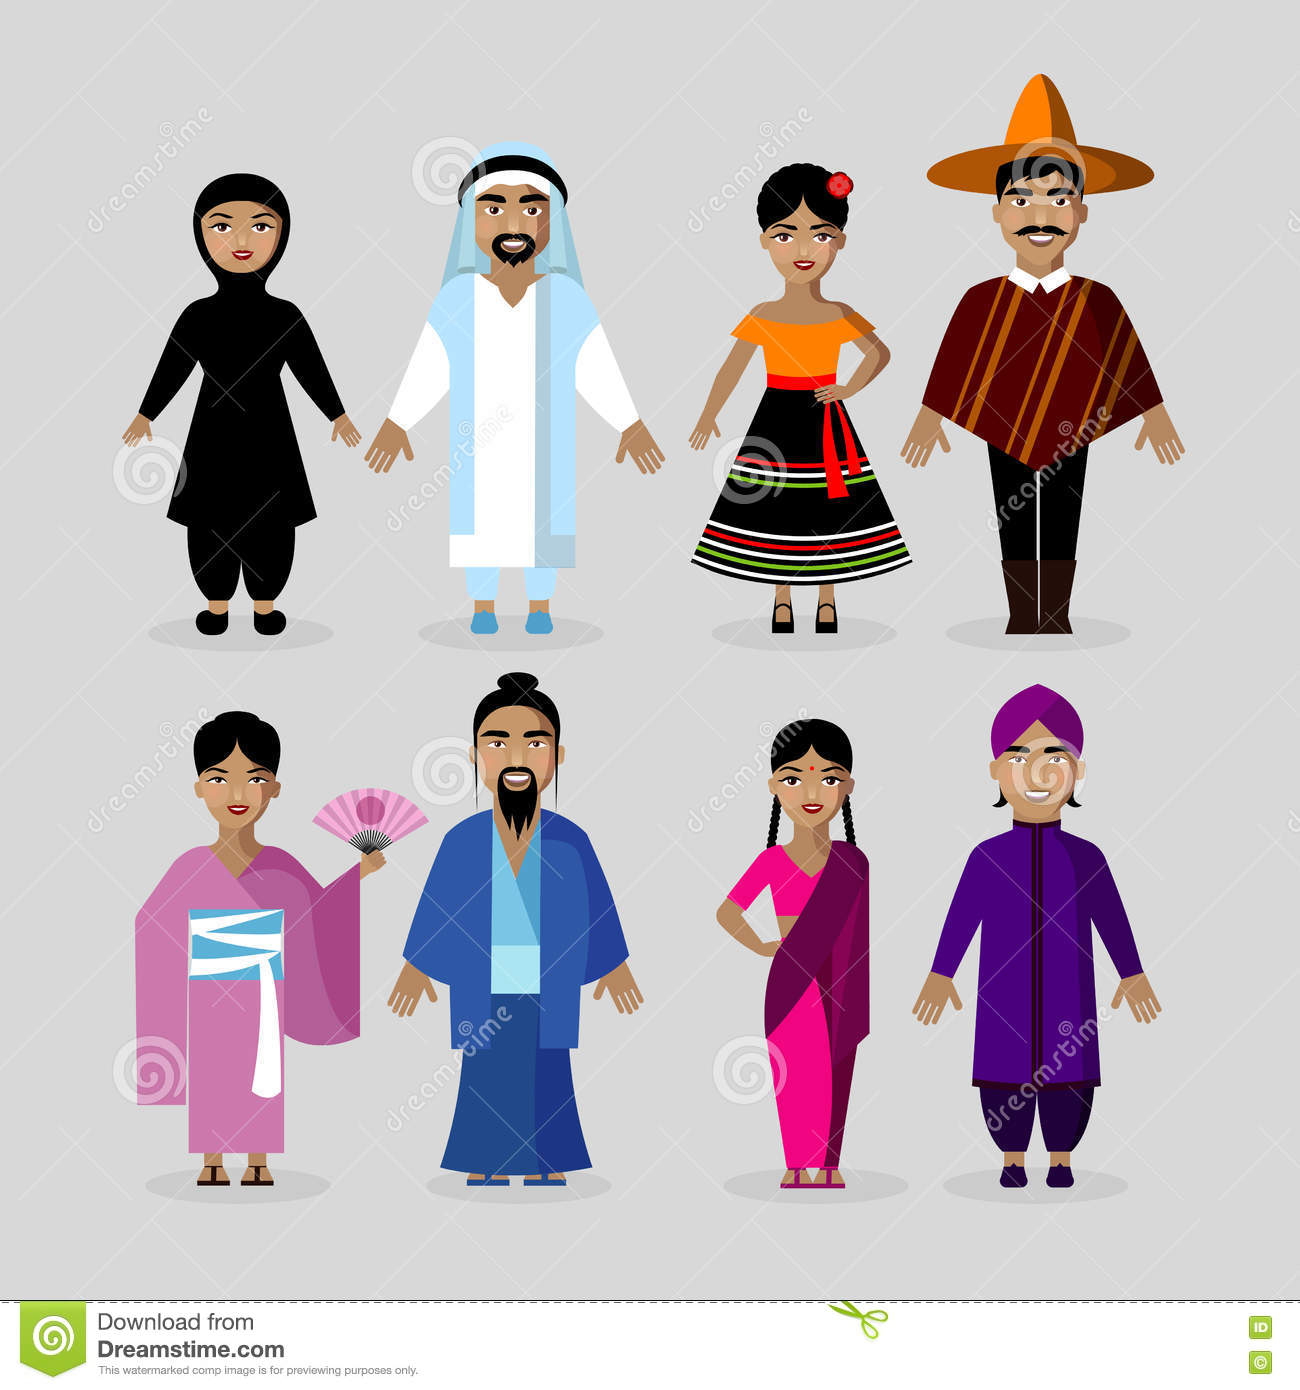 people in traditional costumes